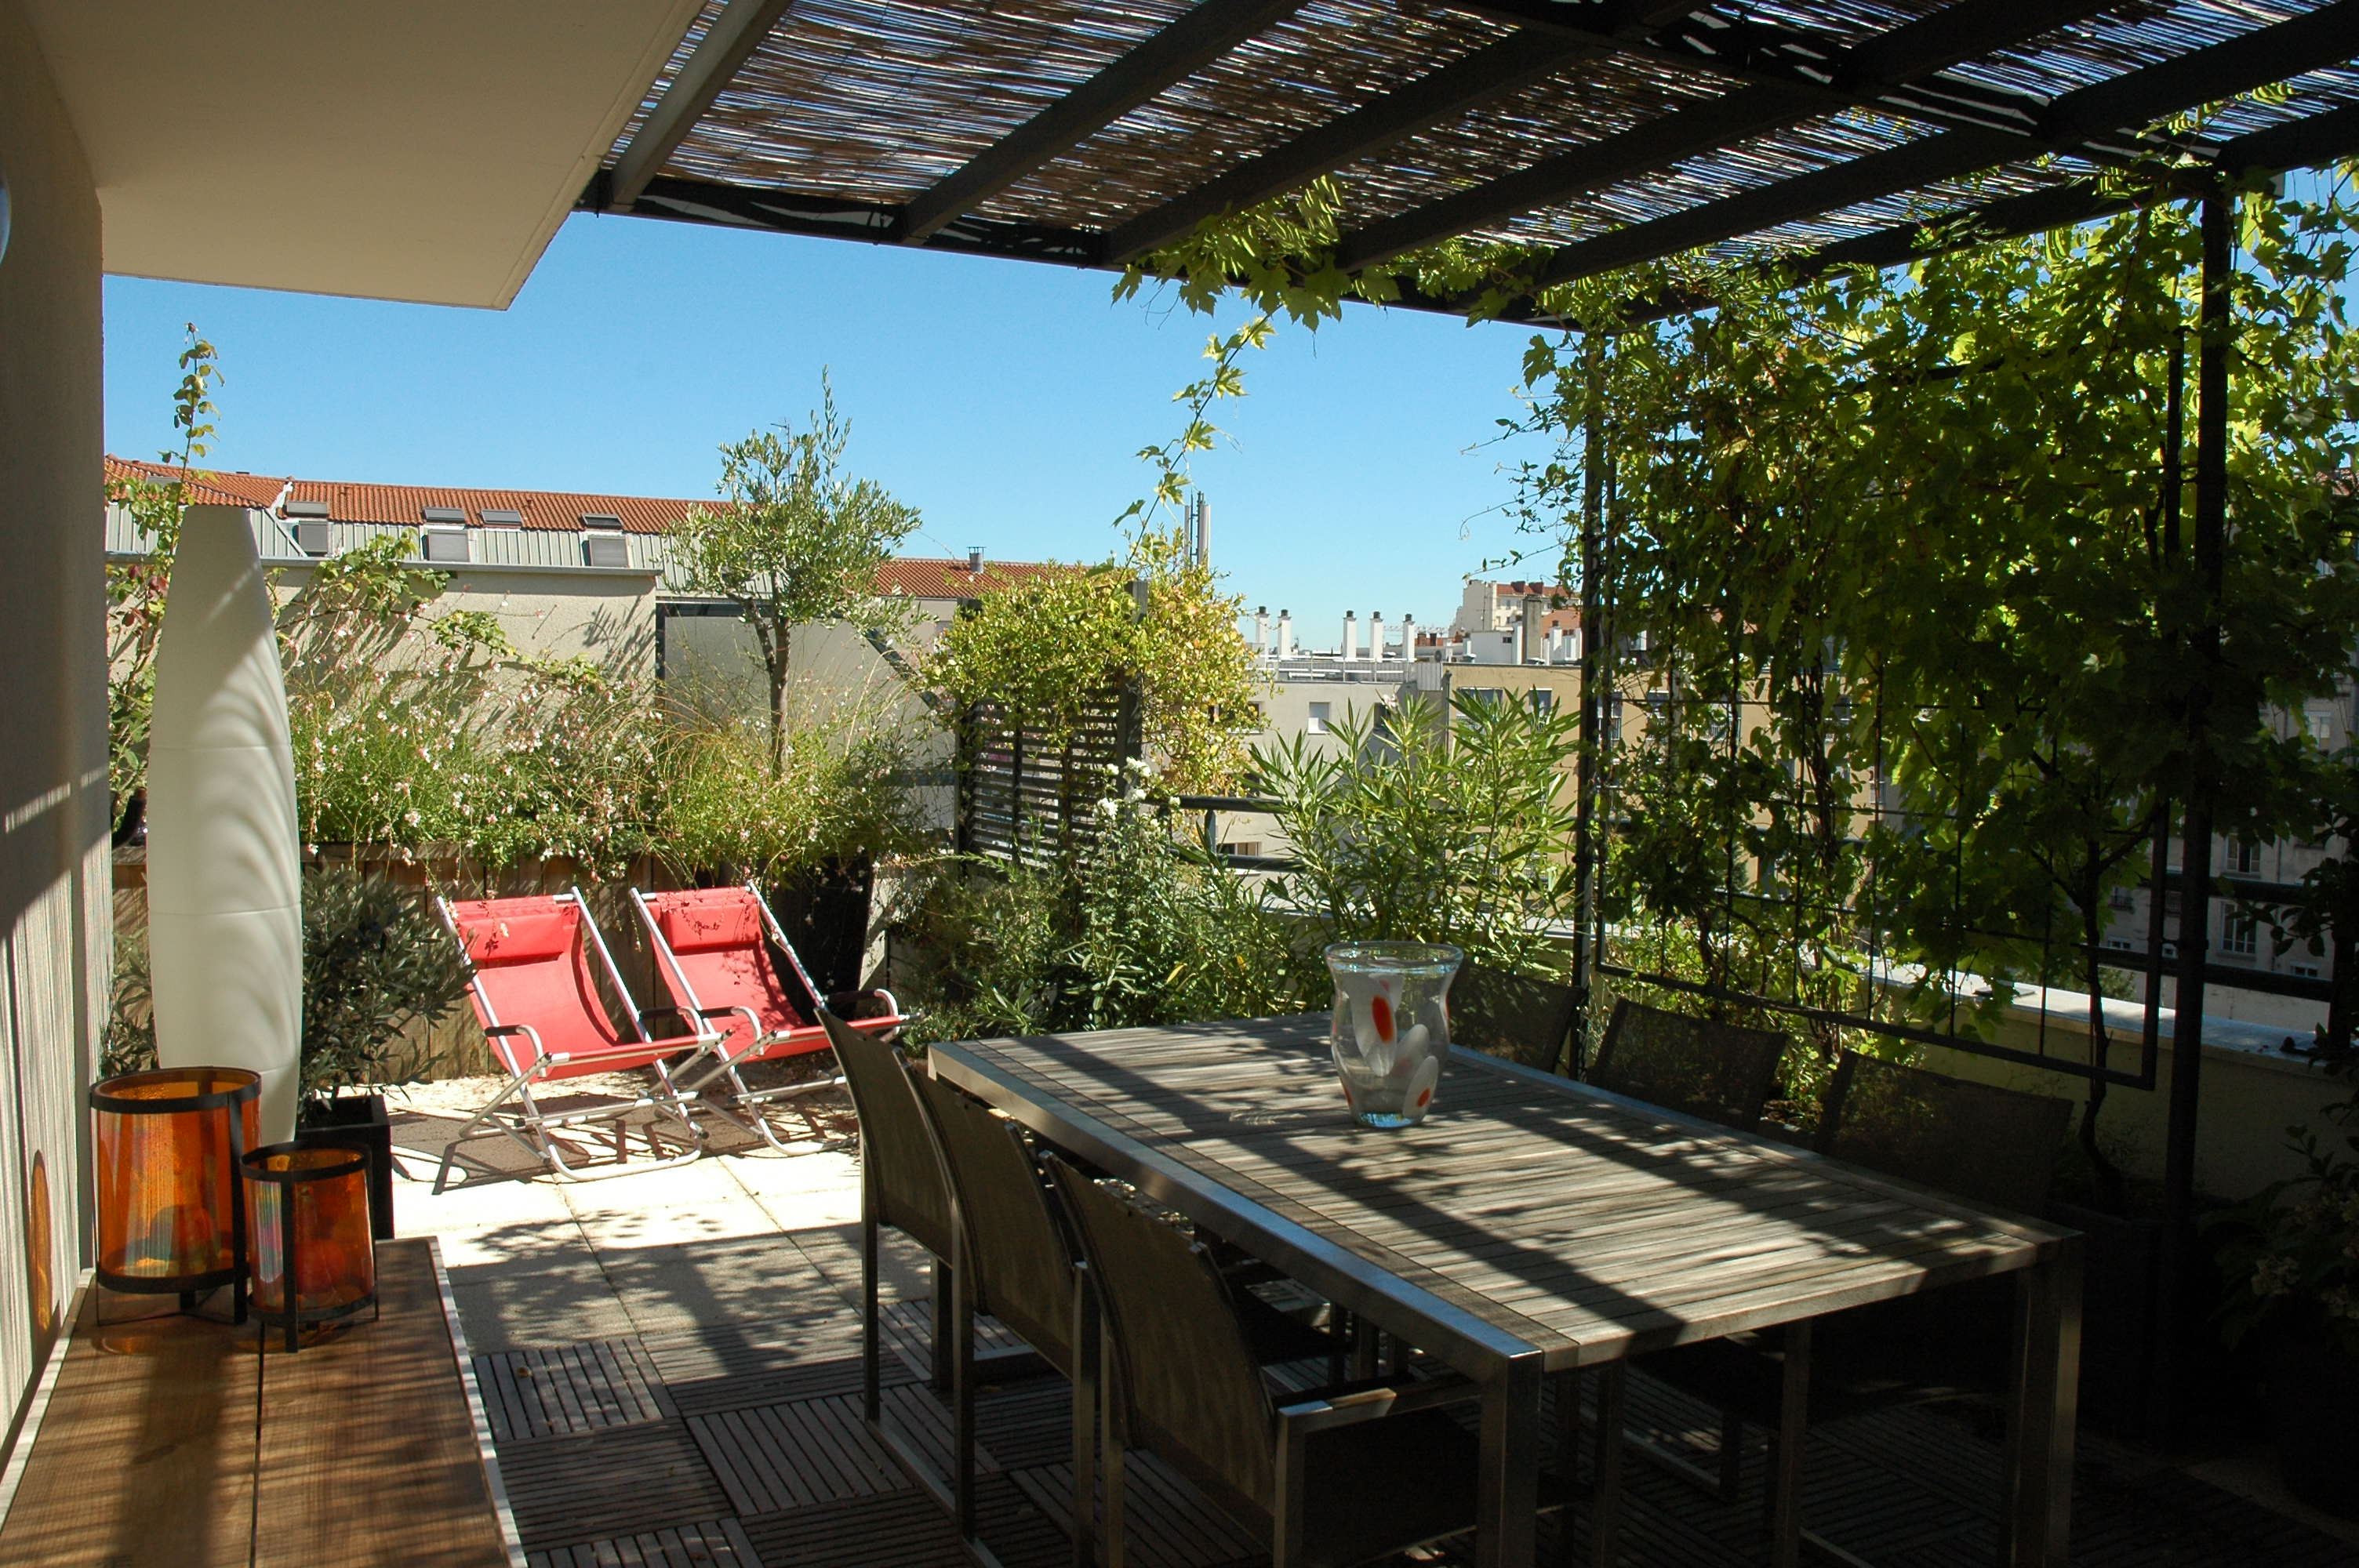 D co terrasse immeuble exemples d 39 am nagements for Deco buitenkant terras